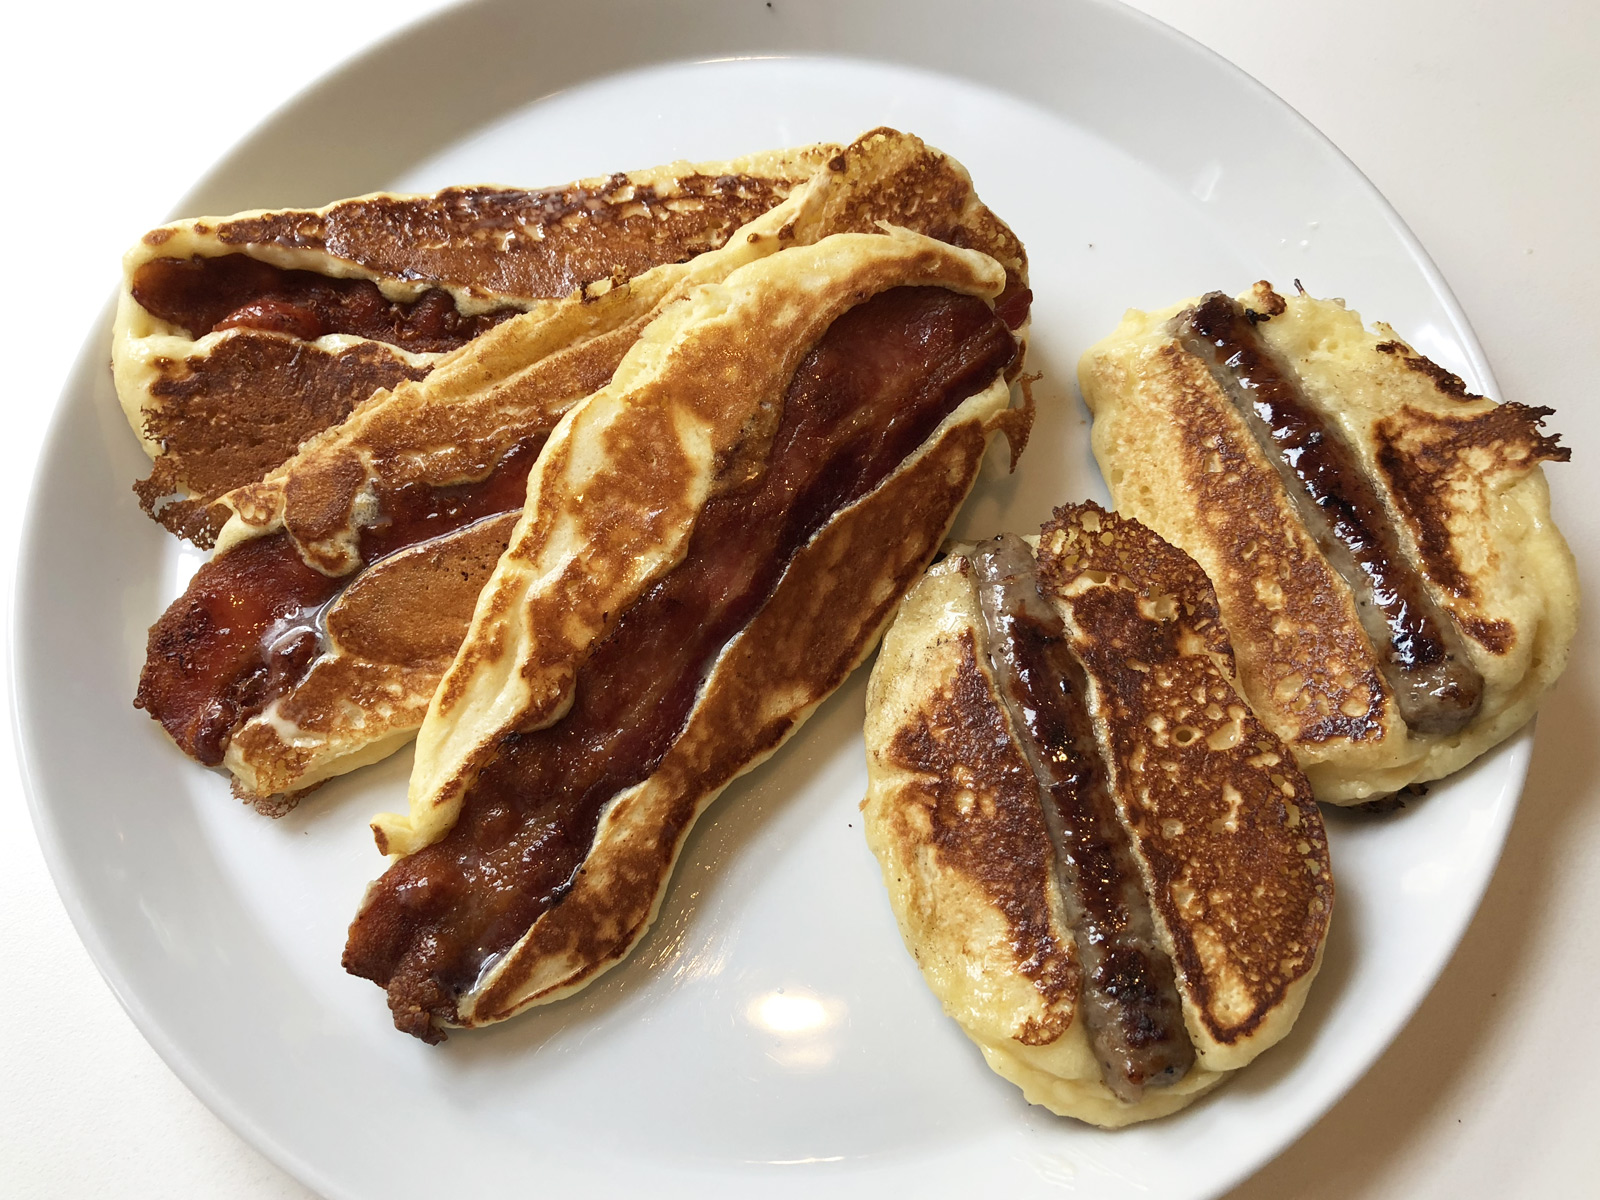 Portable Pancake Sticks Have the Syrup Built Right In